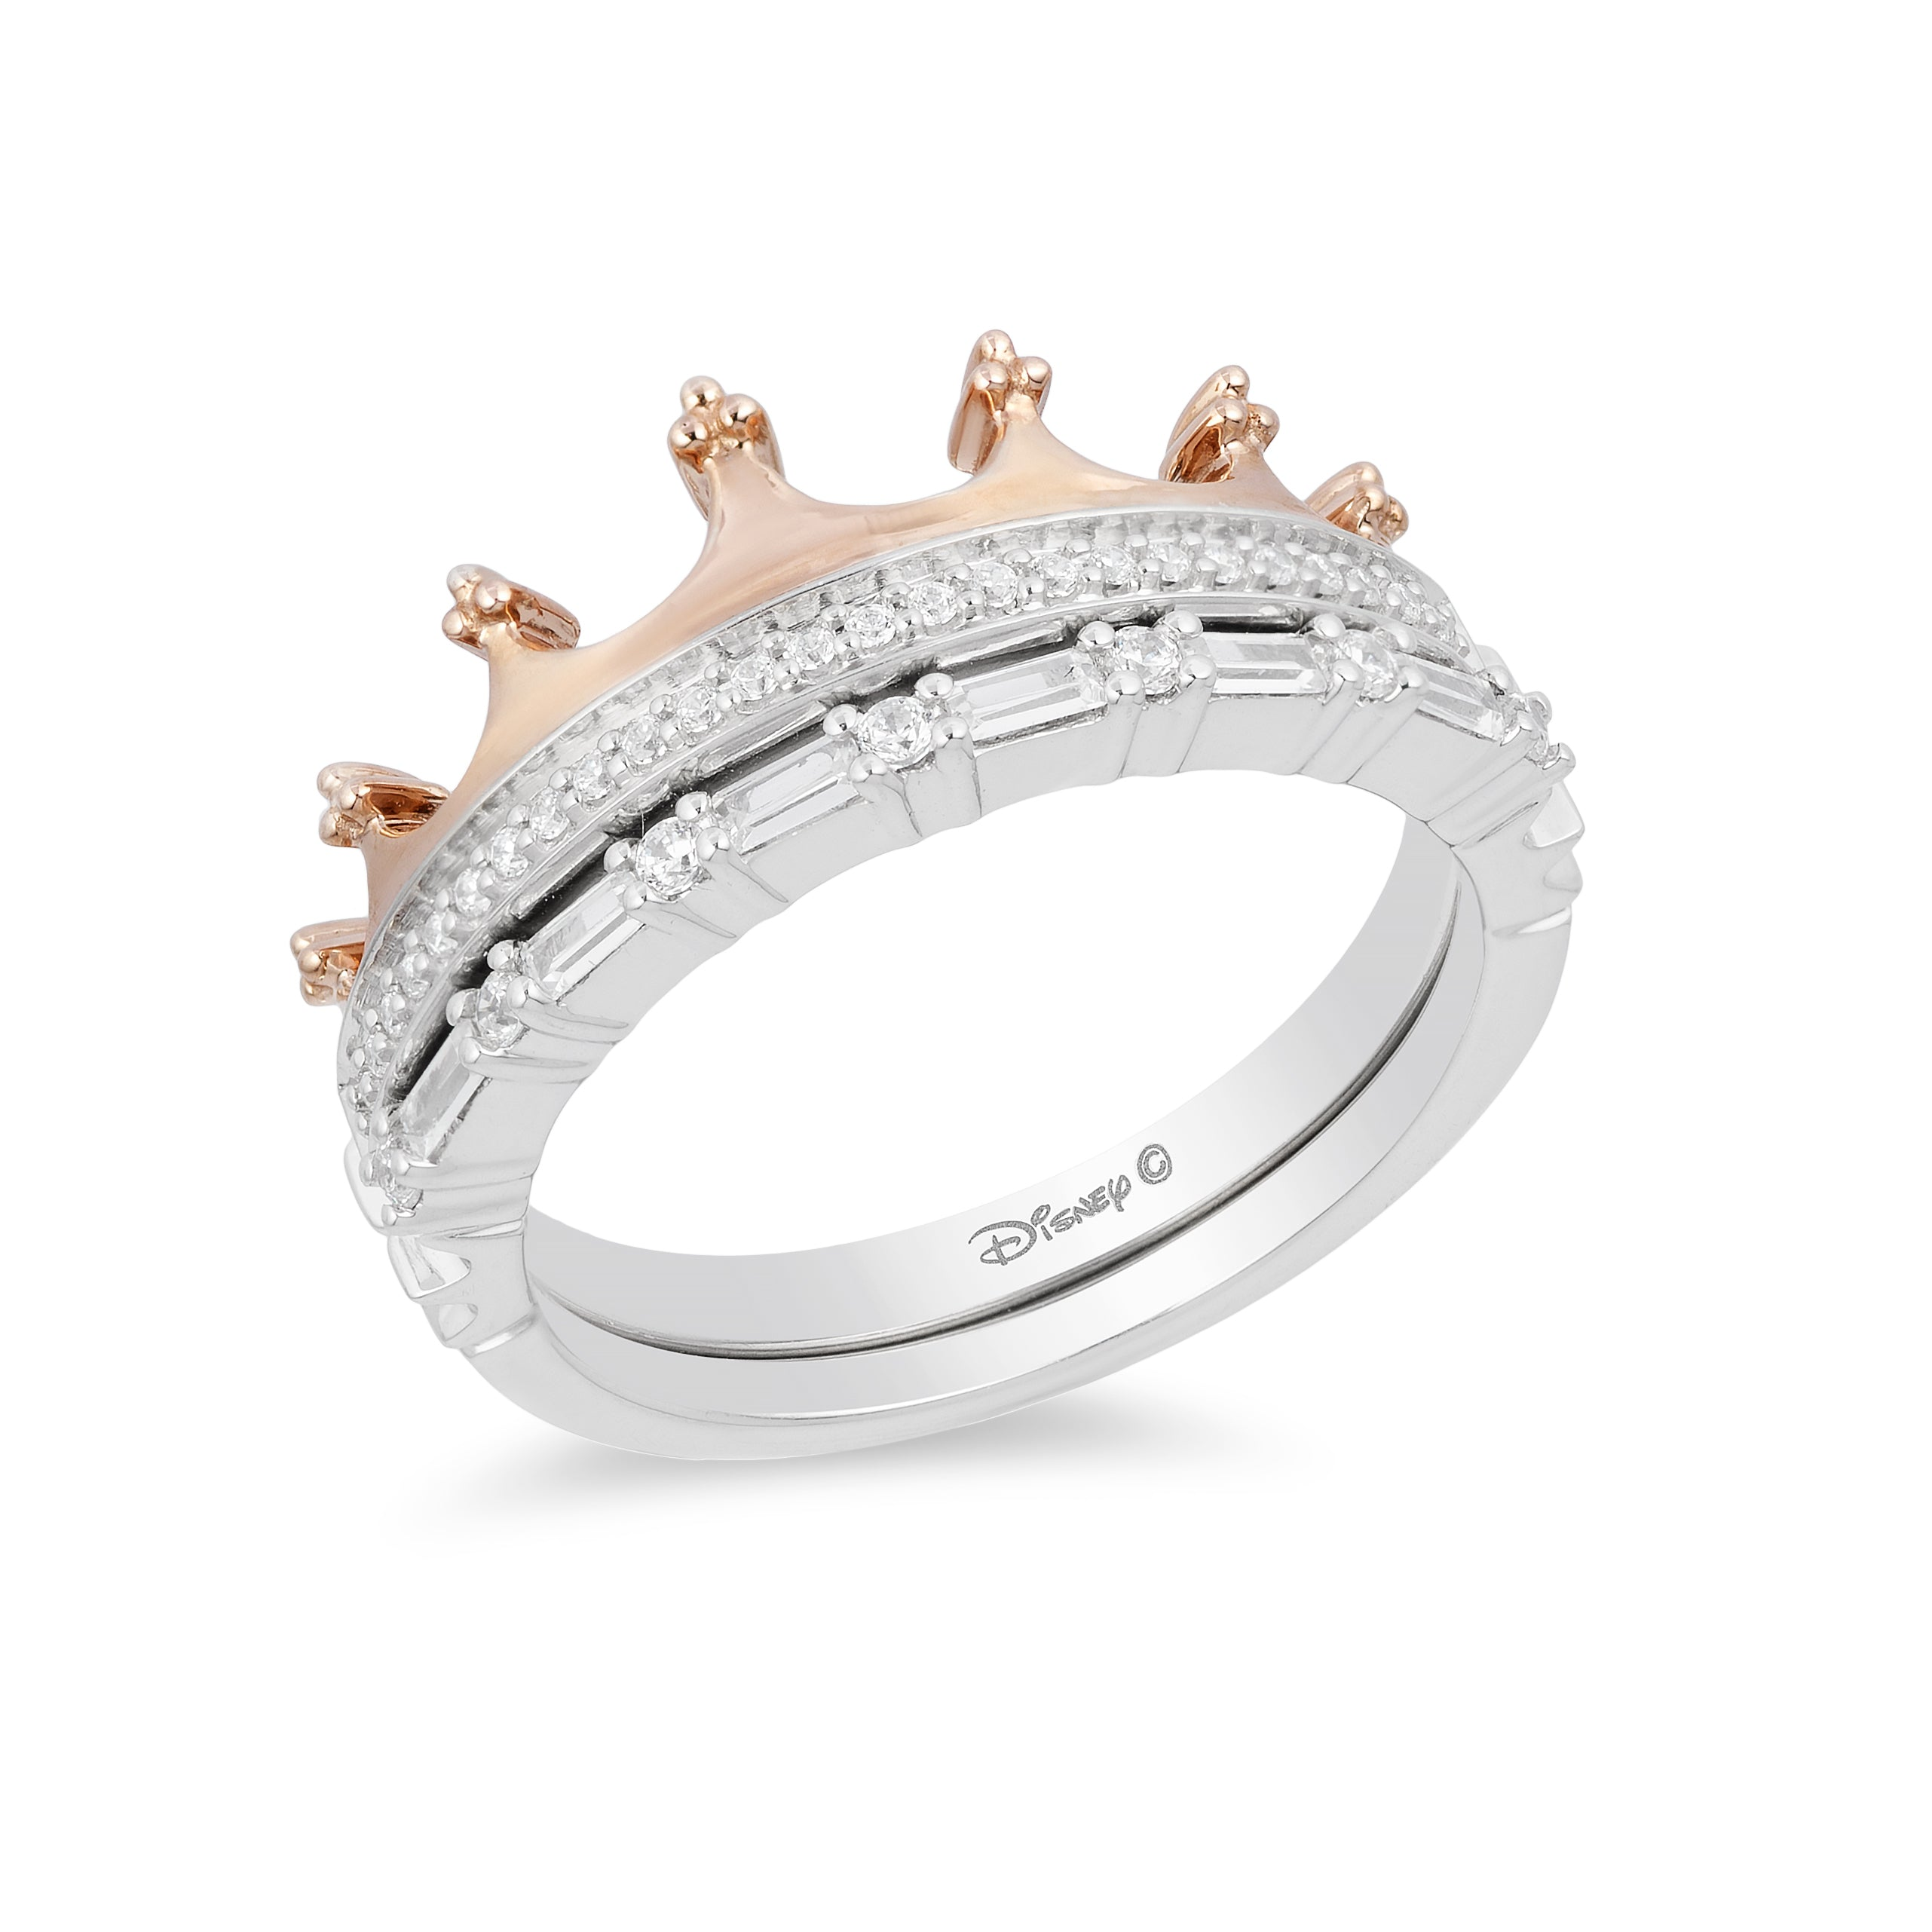 enchanted_disney-majestic-princess_crown_ring-9k_rose_gold_and_sterling_silver_0.33CTTW_1